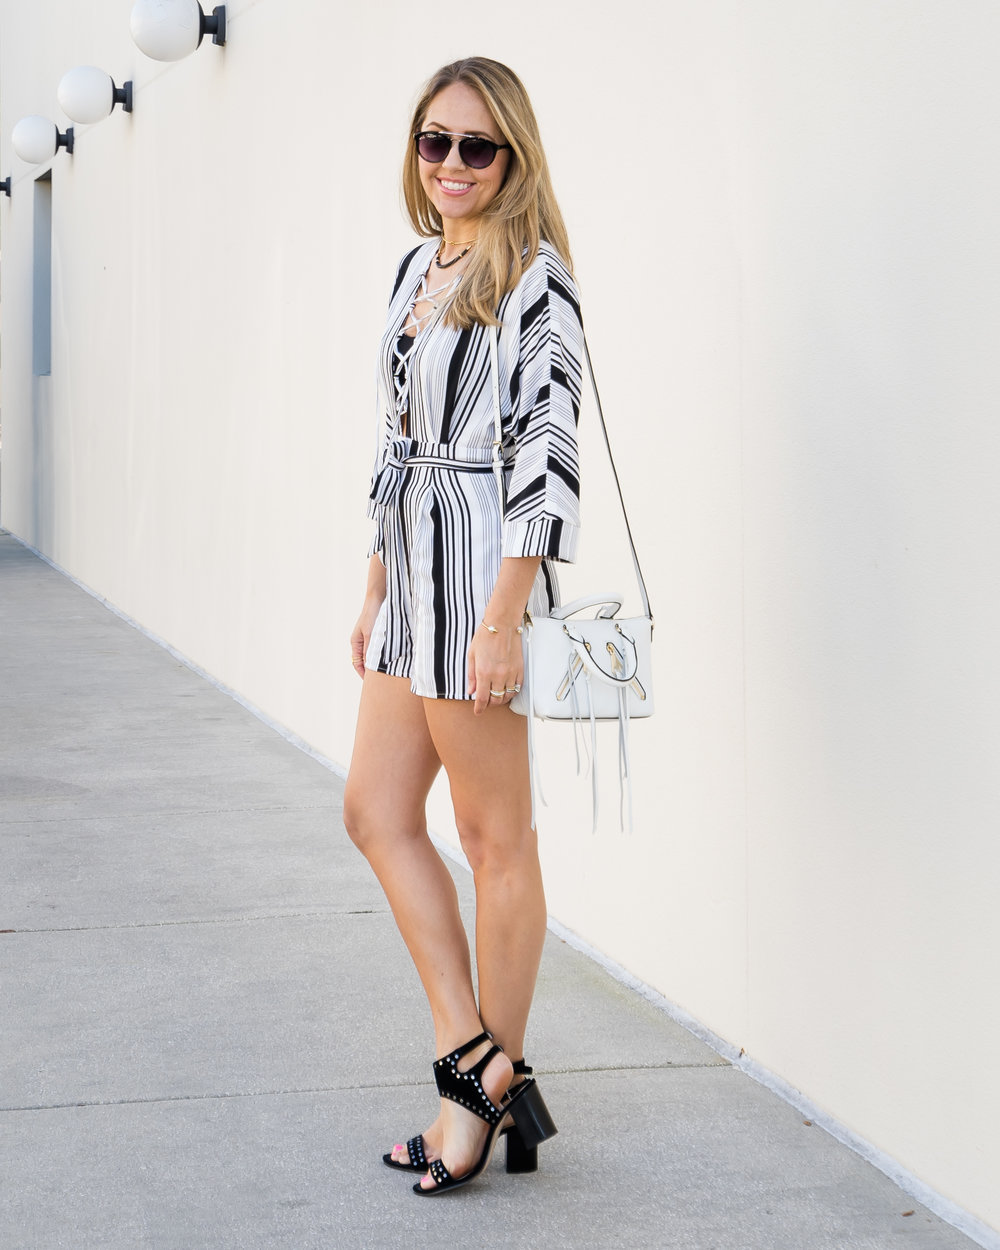 Stripe lace up romper, studded block heels